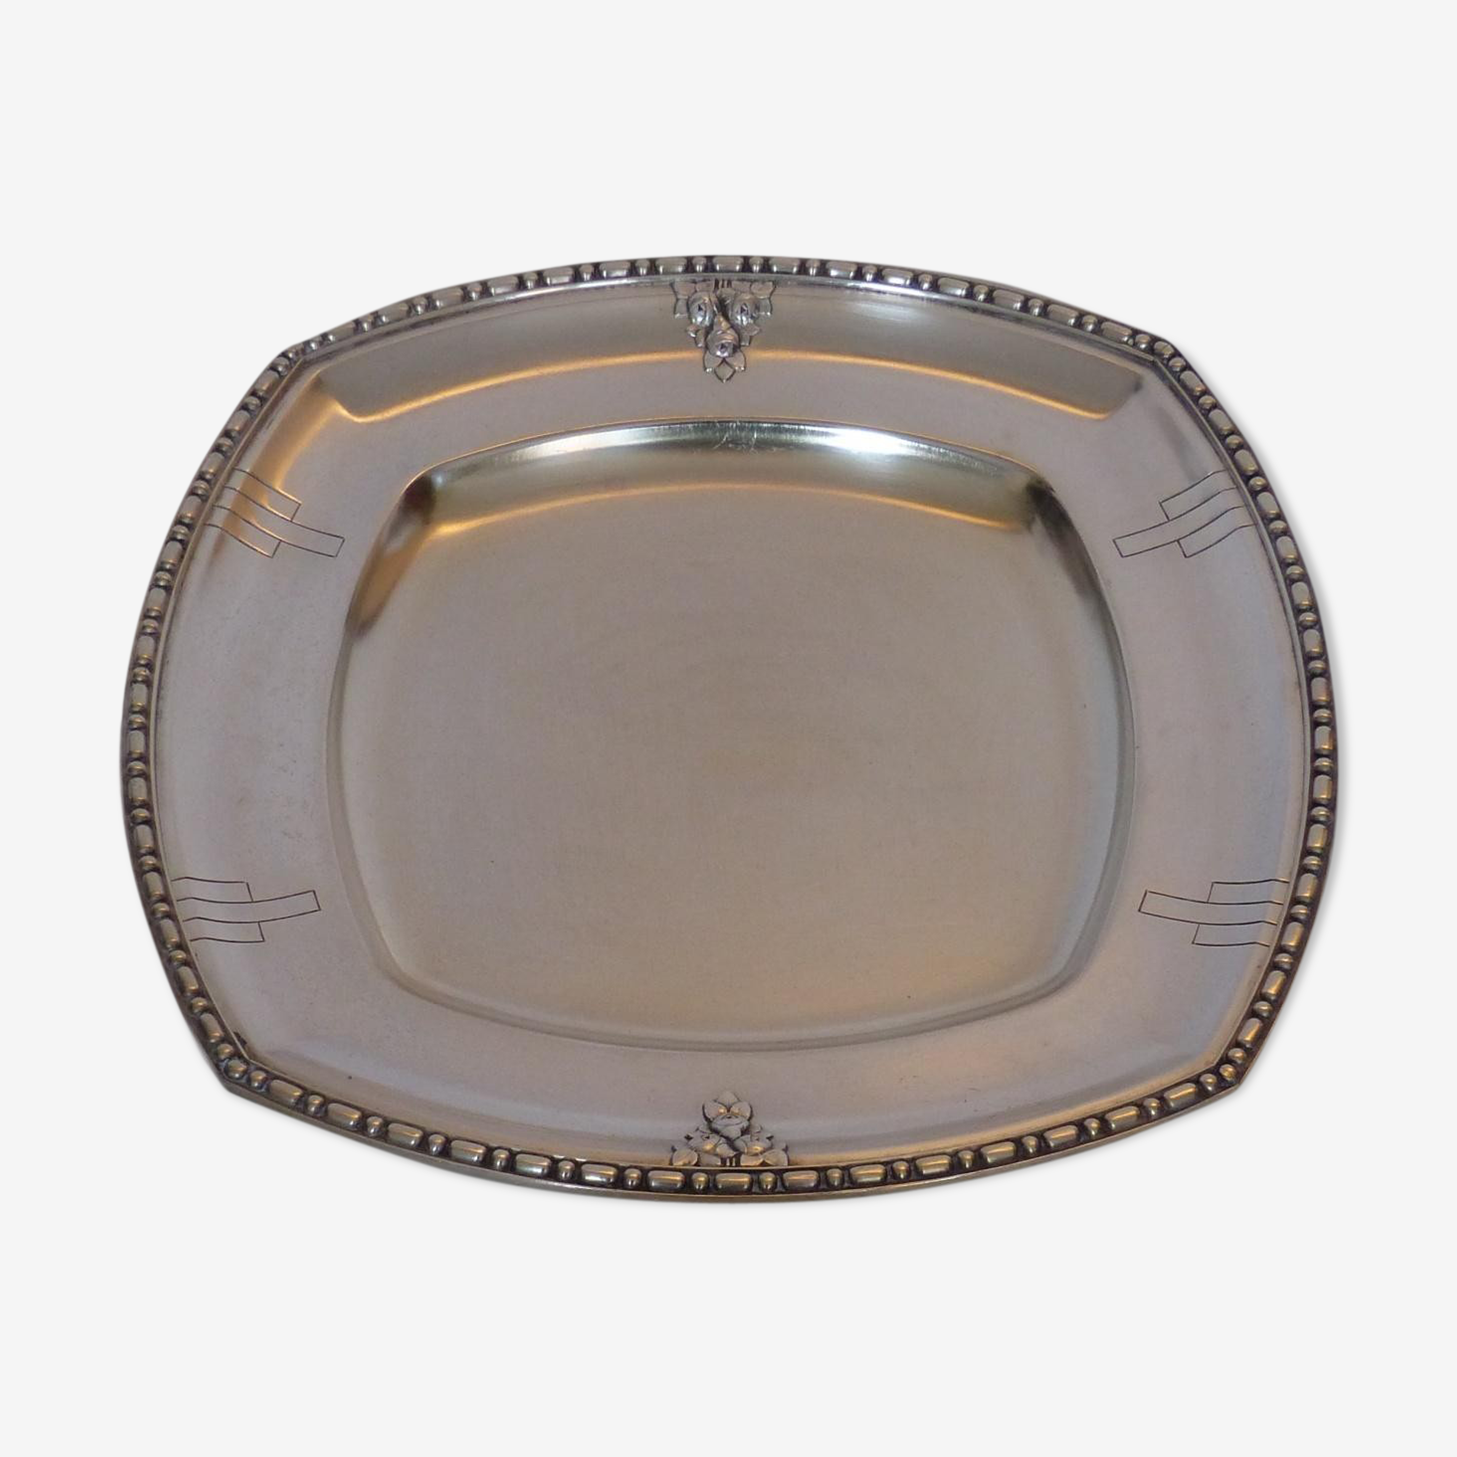 Silver metal tray 1920-punch R * M 12GR